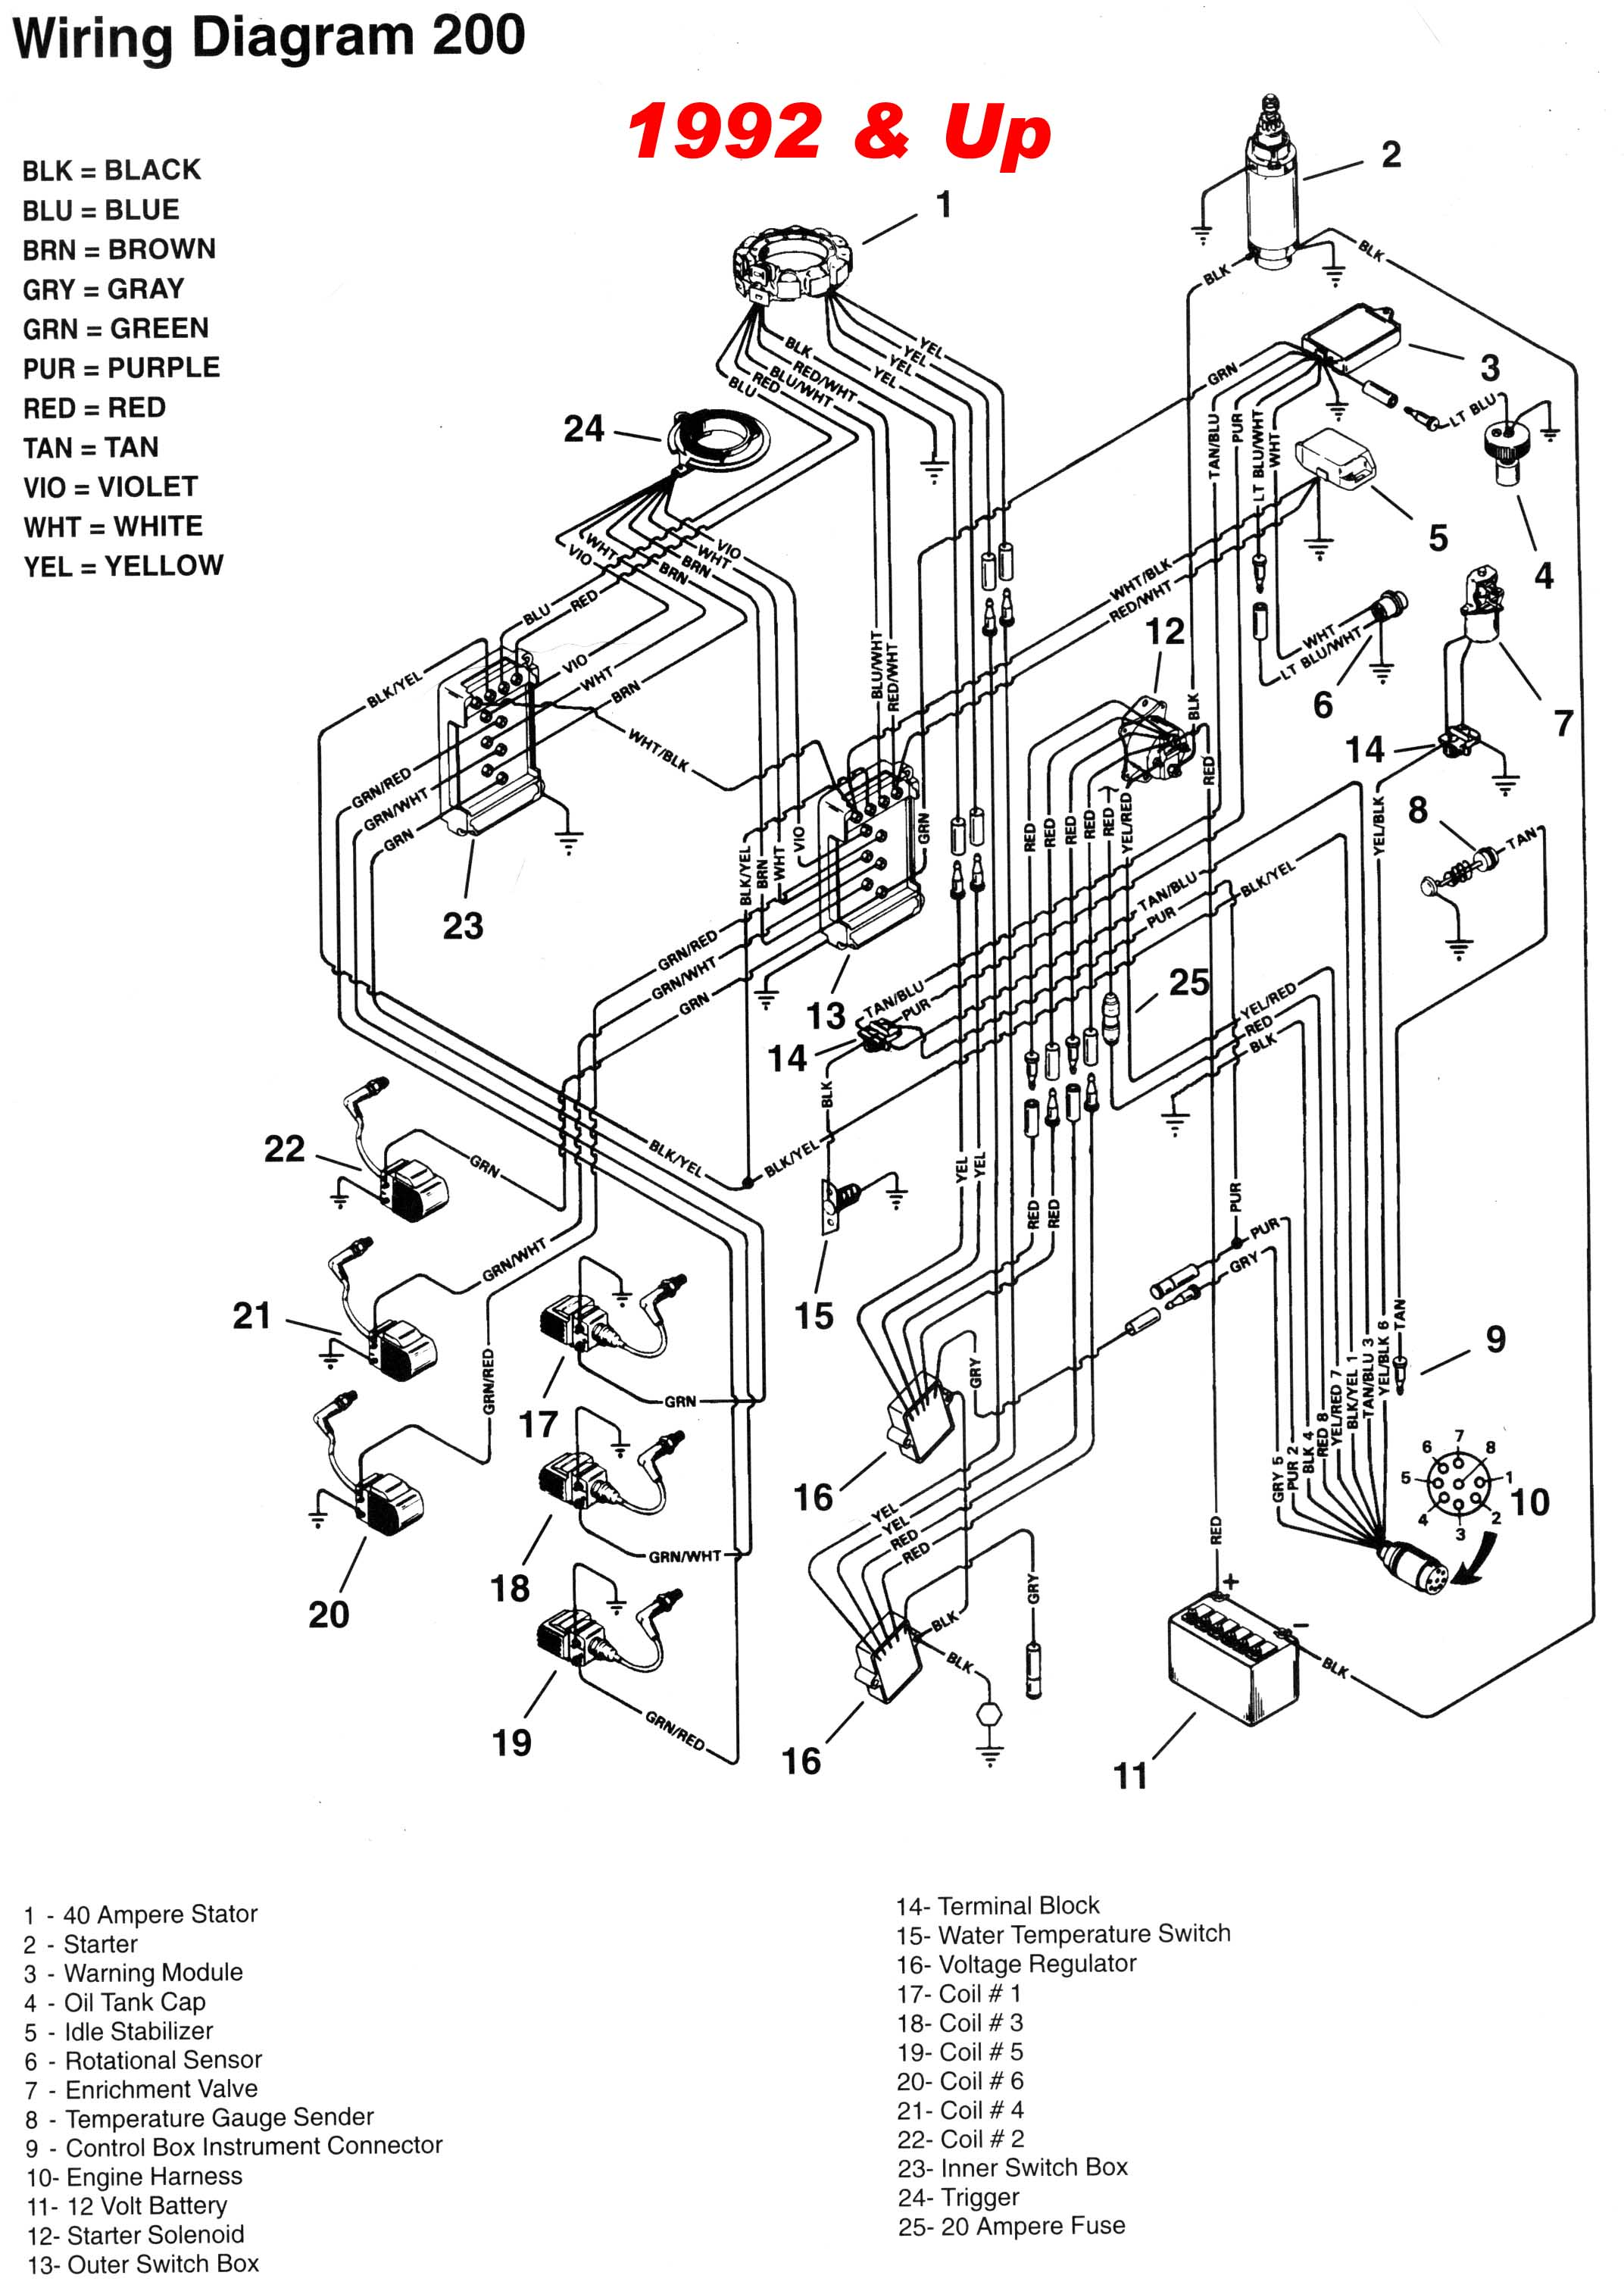 mercury_92up_200_wiring mercury outboard 2 5 and 3 0l v6 and gearcase faq mercury 14 pin wiring harness diagram at webbmarketing.co